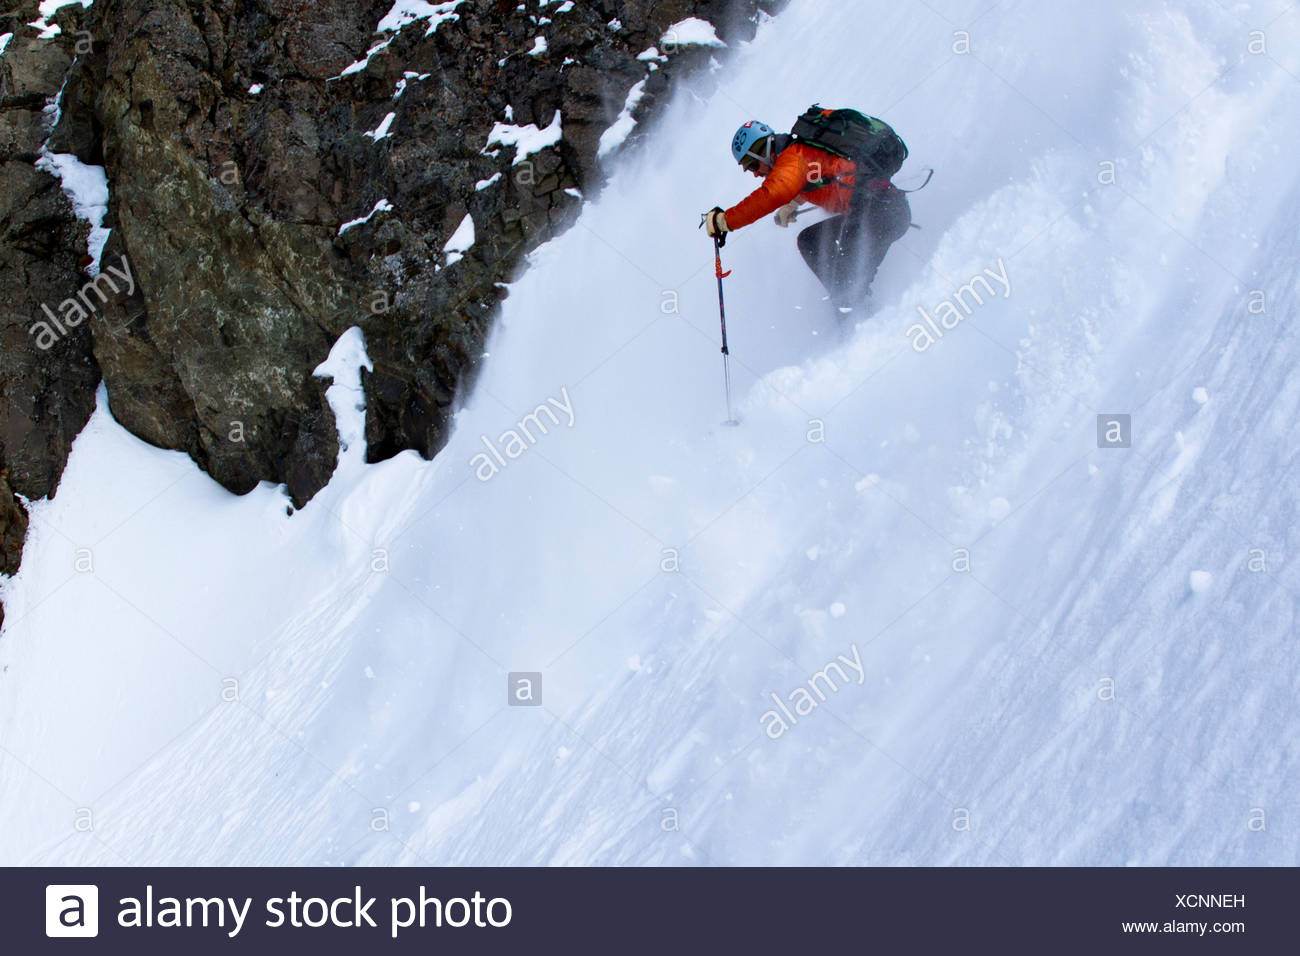 Man backcountry skiing on the north face of Korohusk Peak in the Ram Valley, Chugach Mountains, Eagle River, Southcentral Alaska - Stock Image